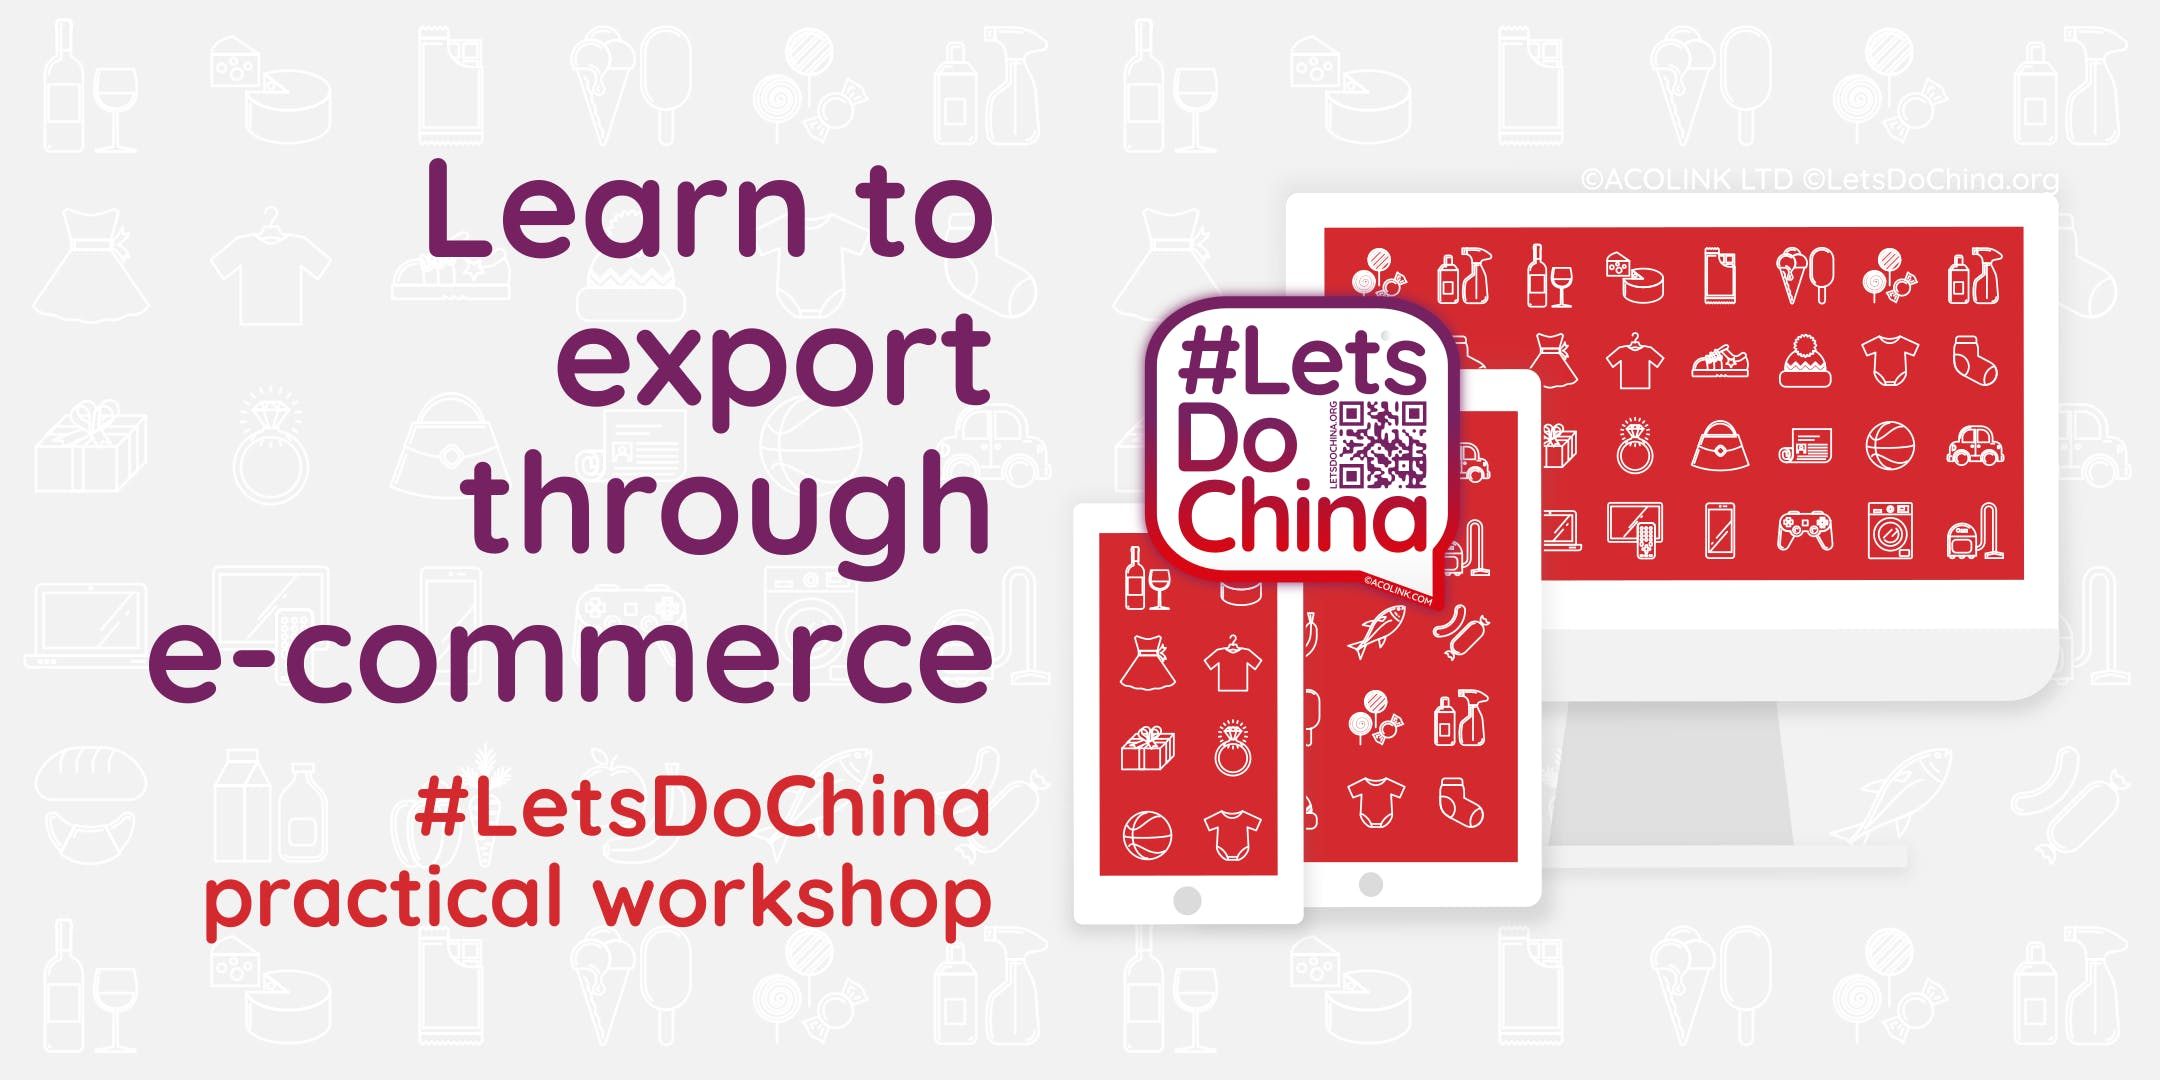 Let's Do China: Learn to export through e-commerce